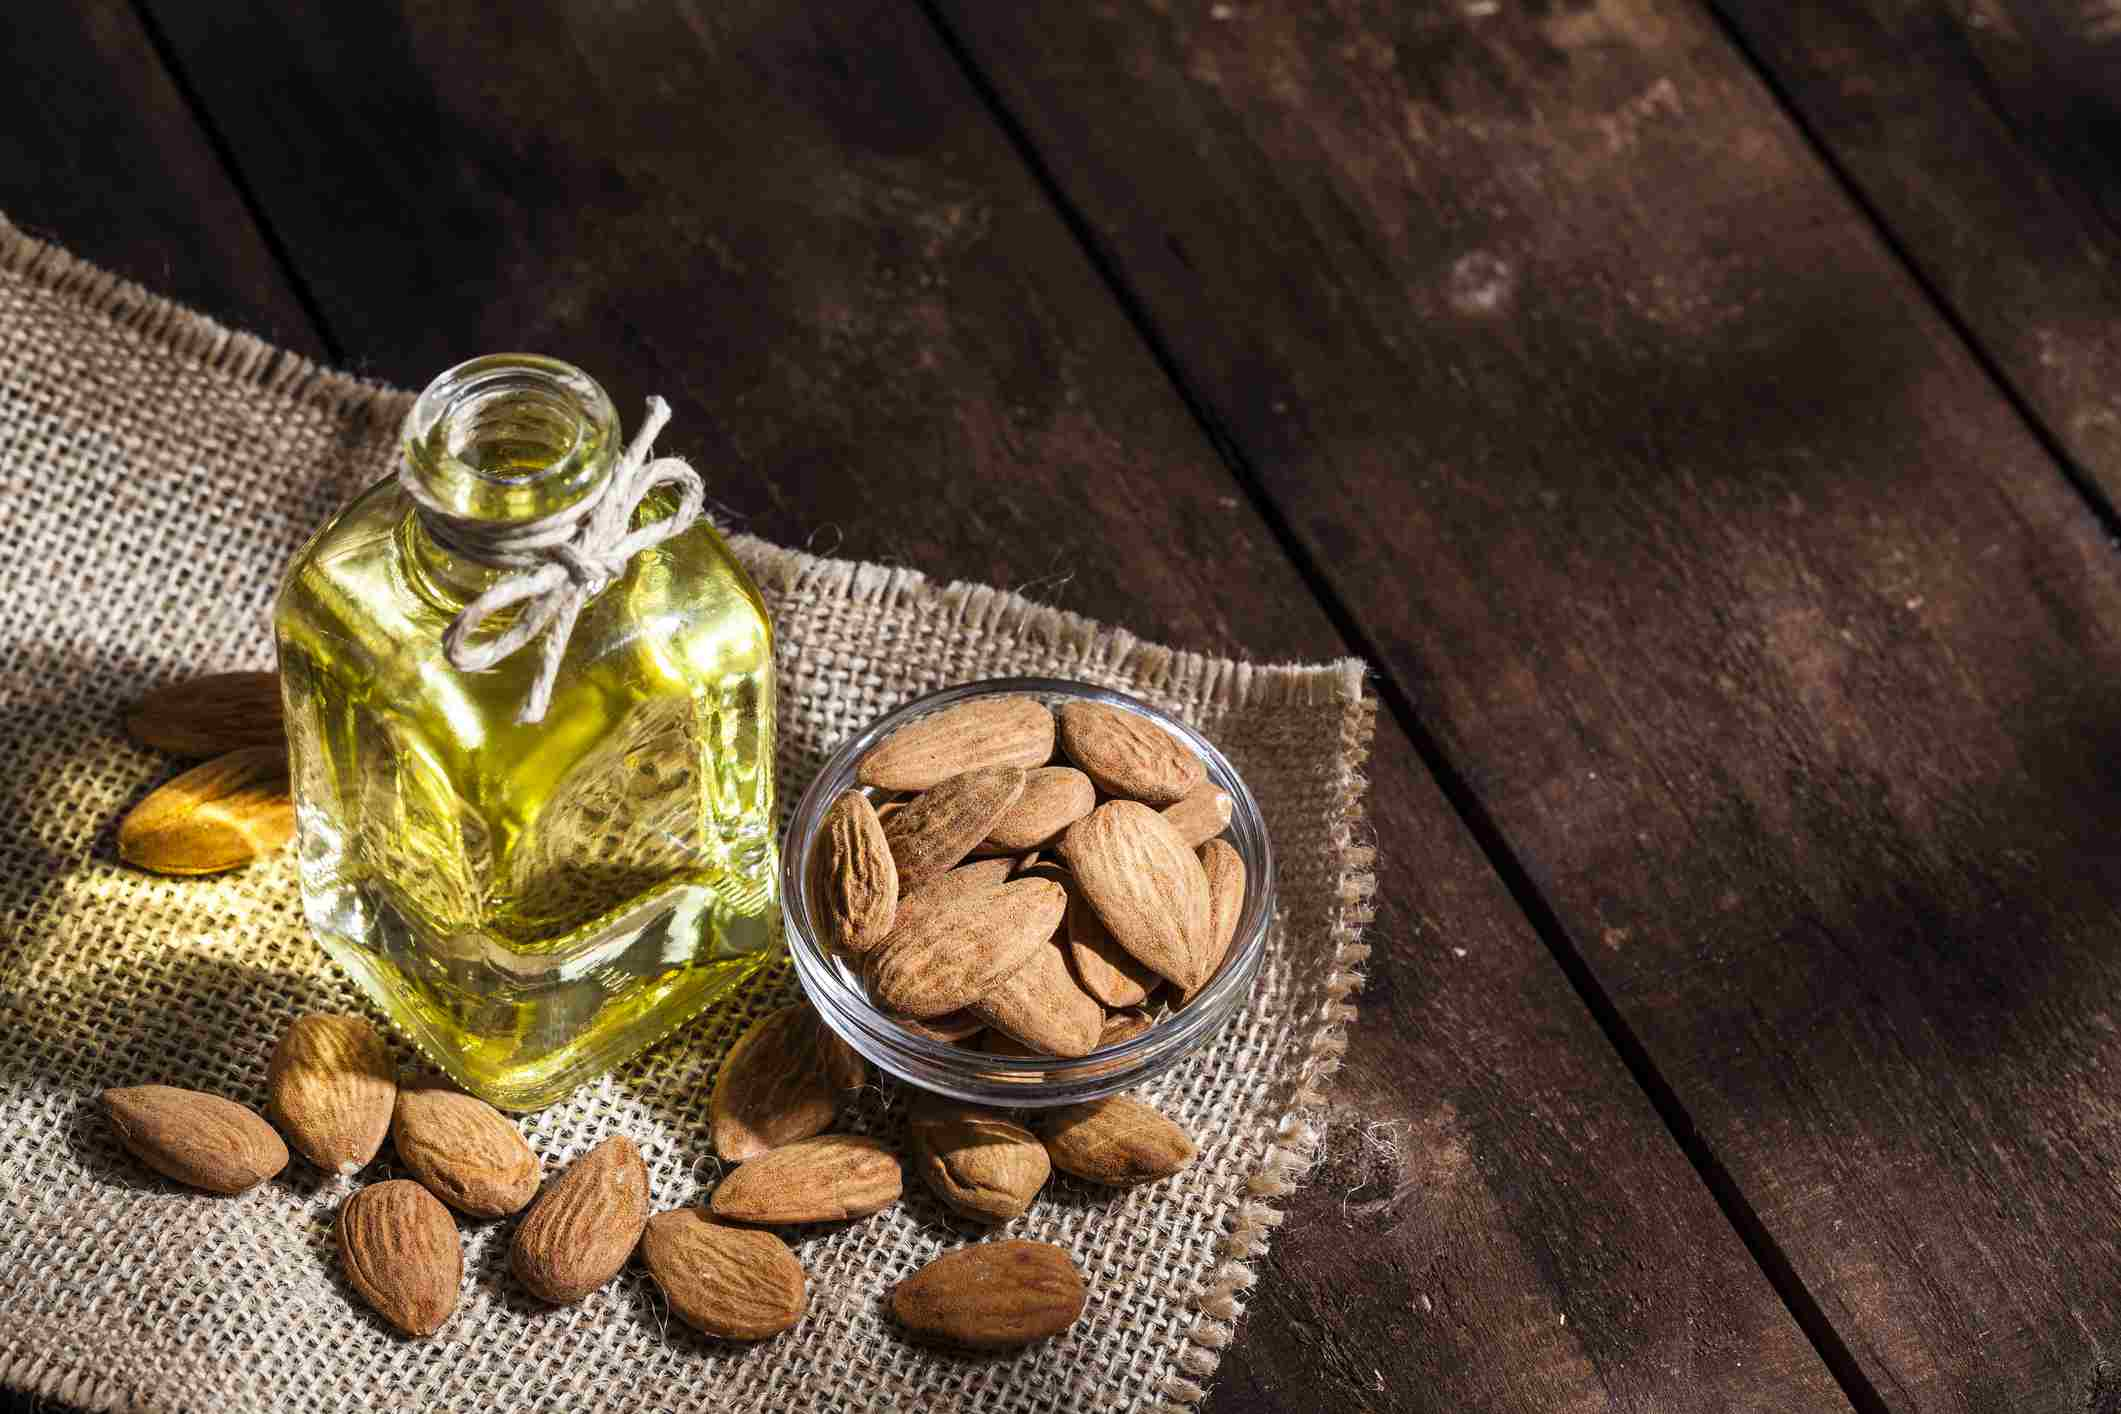 Almond oil and small bowl of almonds on table